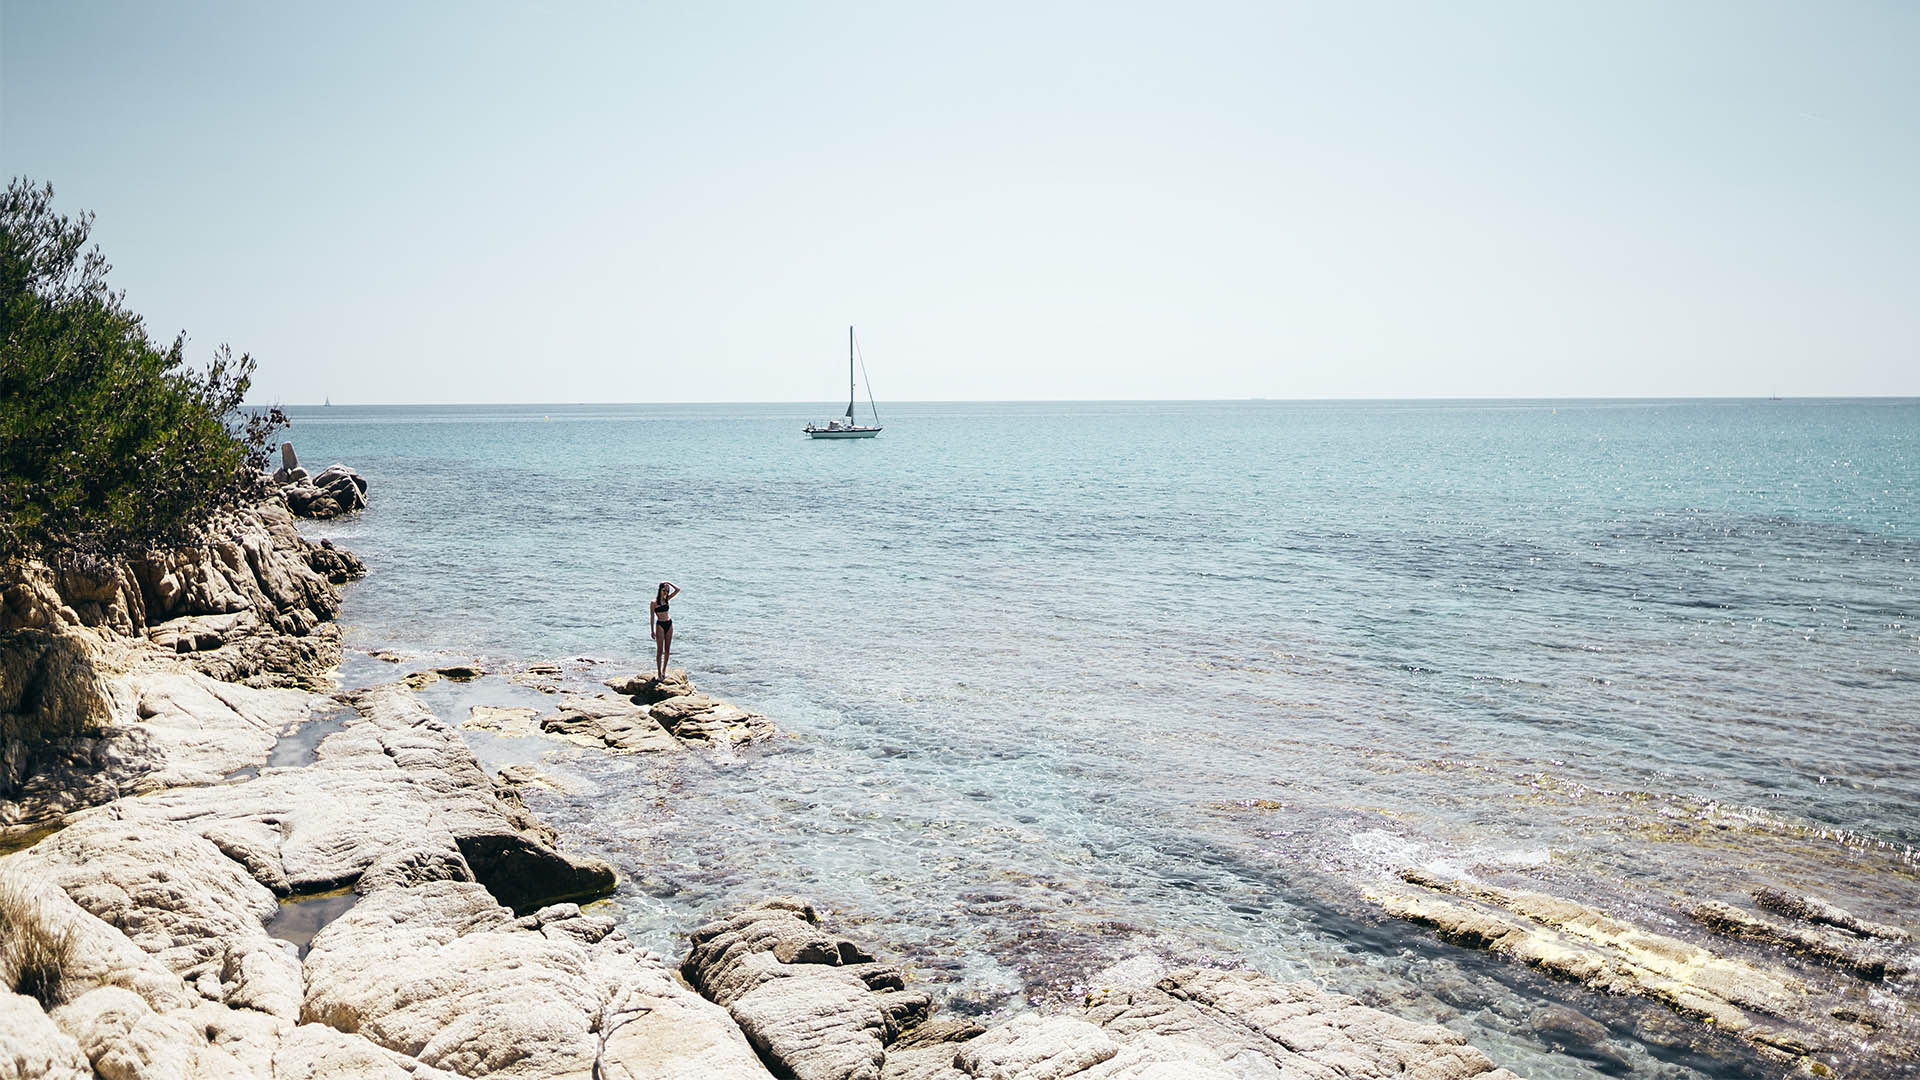 A coastal road trip in the South of France